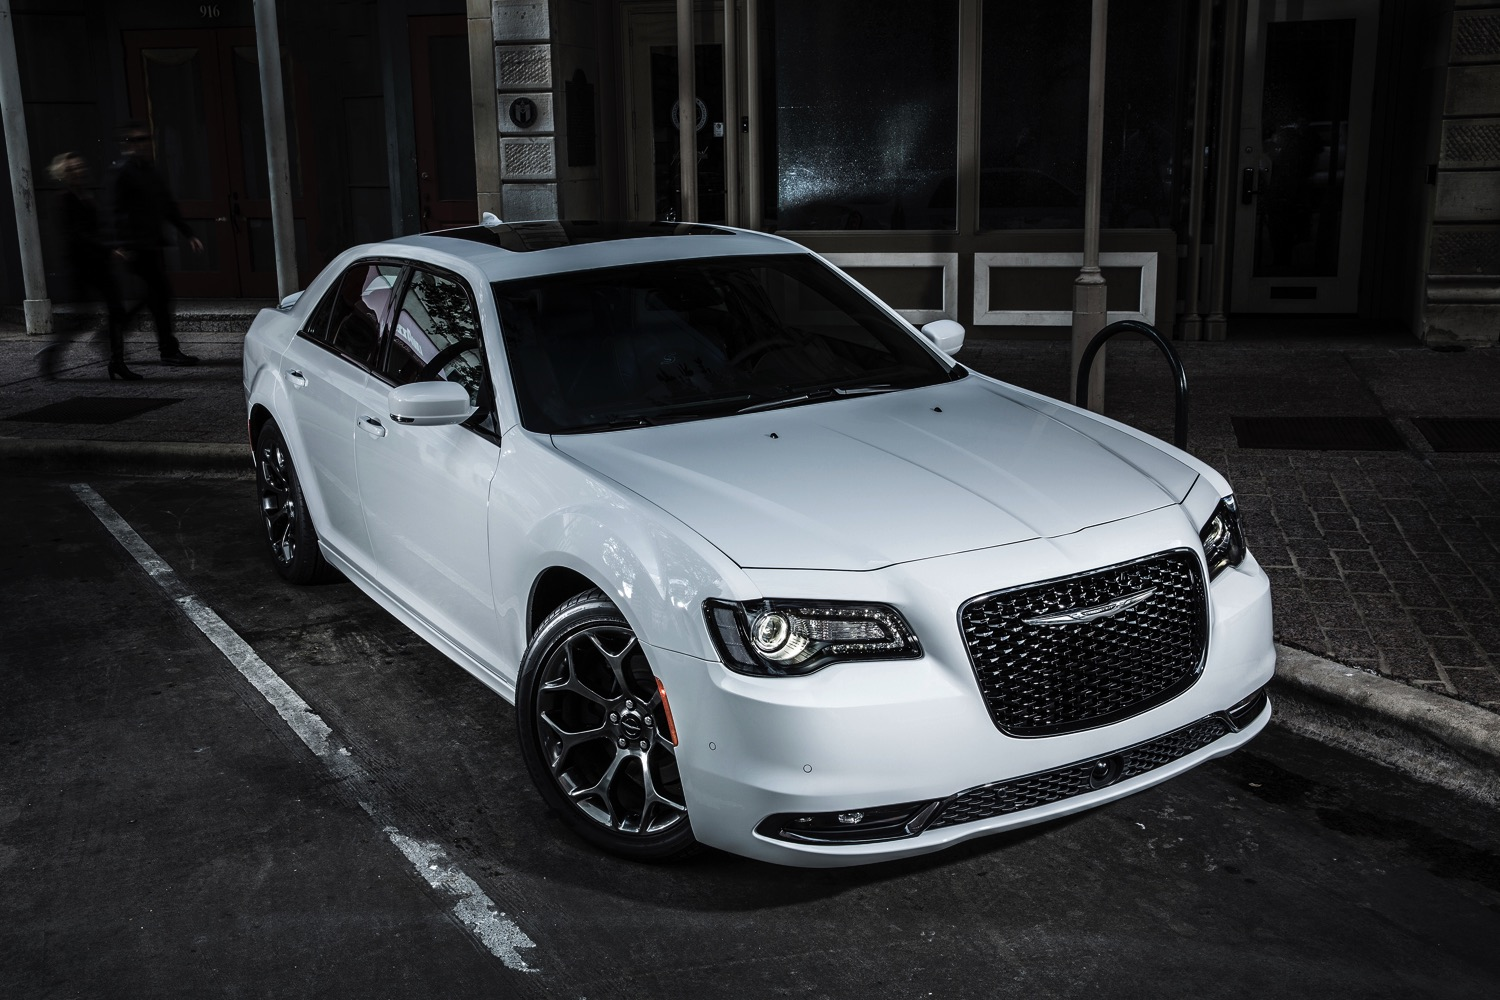 2015 Chrysler 300c 011 Txgarage